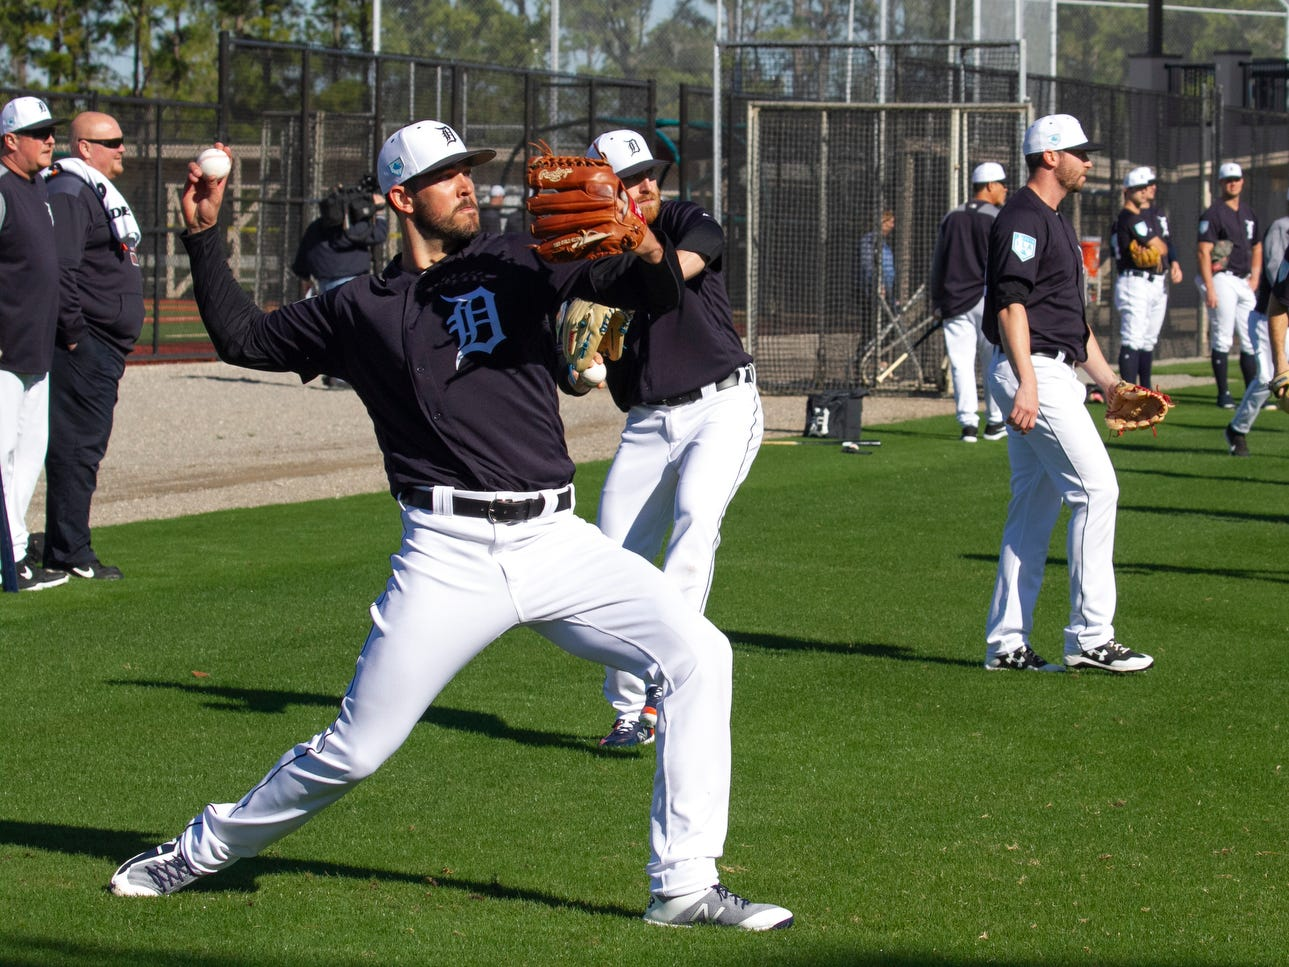 Detroit Tigers pitcher Drew VerHagen, left, and the pitching staff warm up.